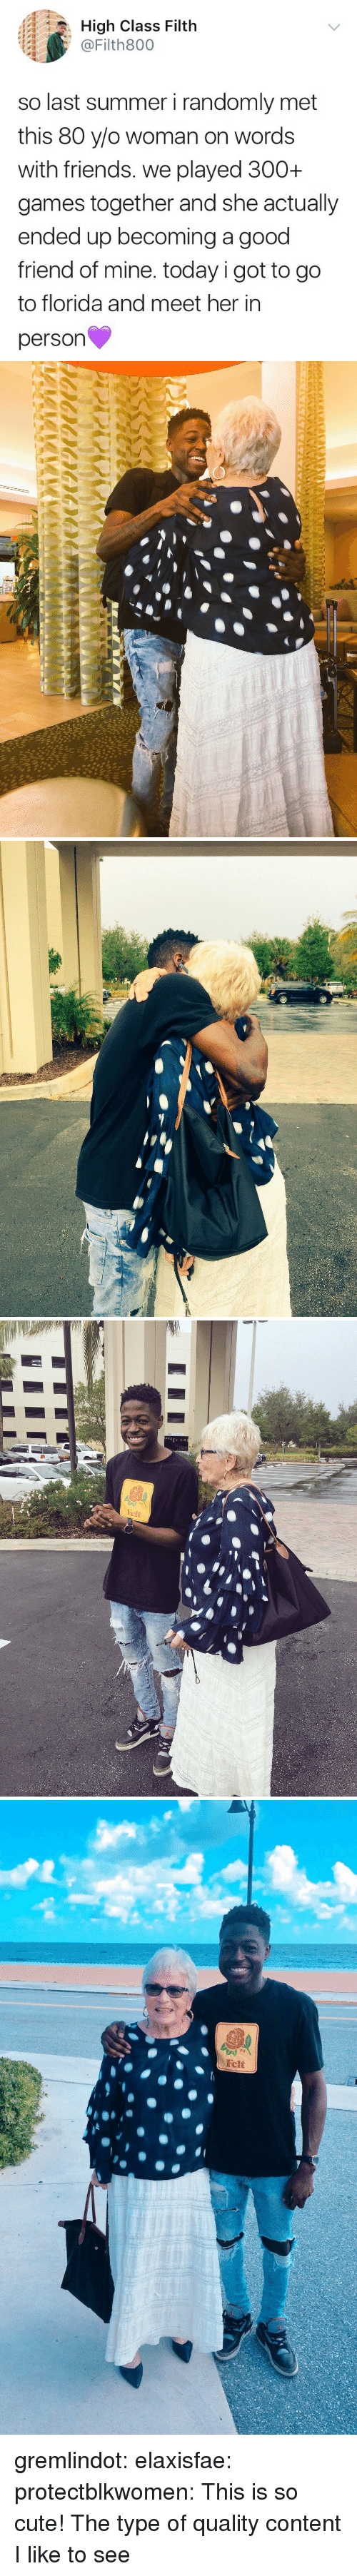 Cute, Friends, and Tumblr: A  High Class Filth  @Filth800  '  so last summer i randomly met  this 80 y/o woman on words  with friends. we played 300+  games together and she actually  ended up becoming a good  friend of mine. today i got to go  to florida and meet her in  person   Fu  Felt   Fu  Felt gremlindot: elaxisfae:   protectblkwomen:  This is so cute!  The type of quality content I like to see